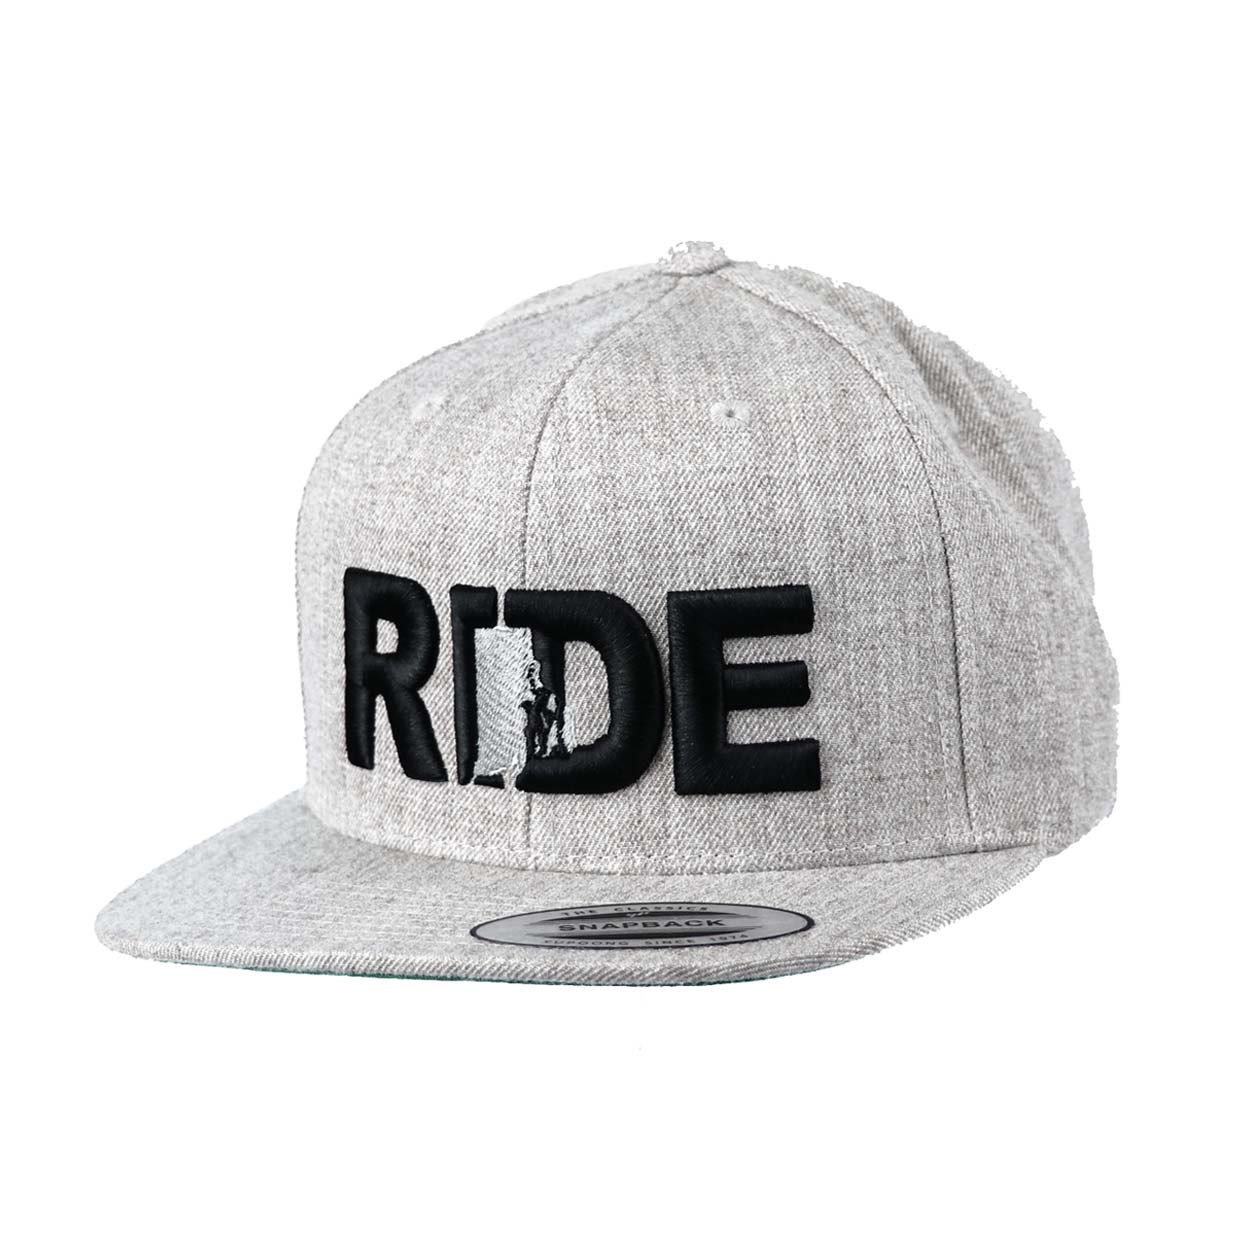 Ride Rhode Island Classic Embroidered Snapback Flat Brim Hat Gray/Black